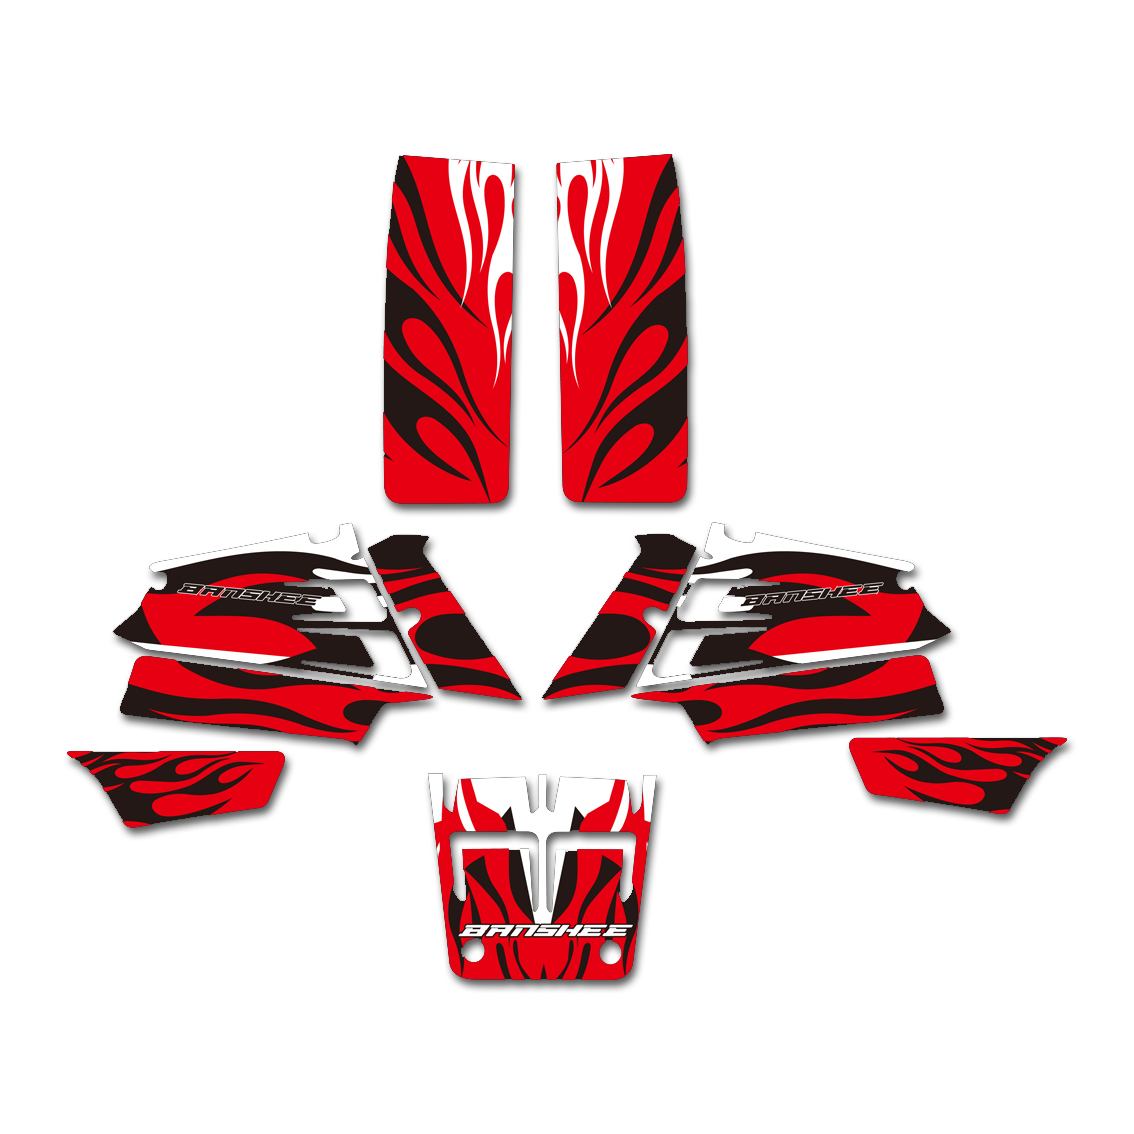 New Style Red Fire DECALS STICKERS Graphics Kits for Yamaha YFZ350 BANSHEE 350 ATV 1987-2005